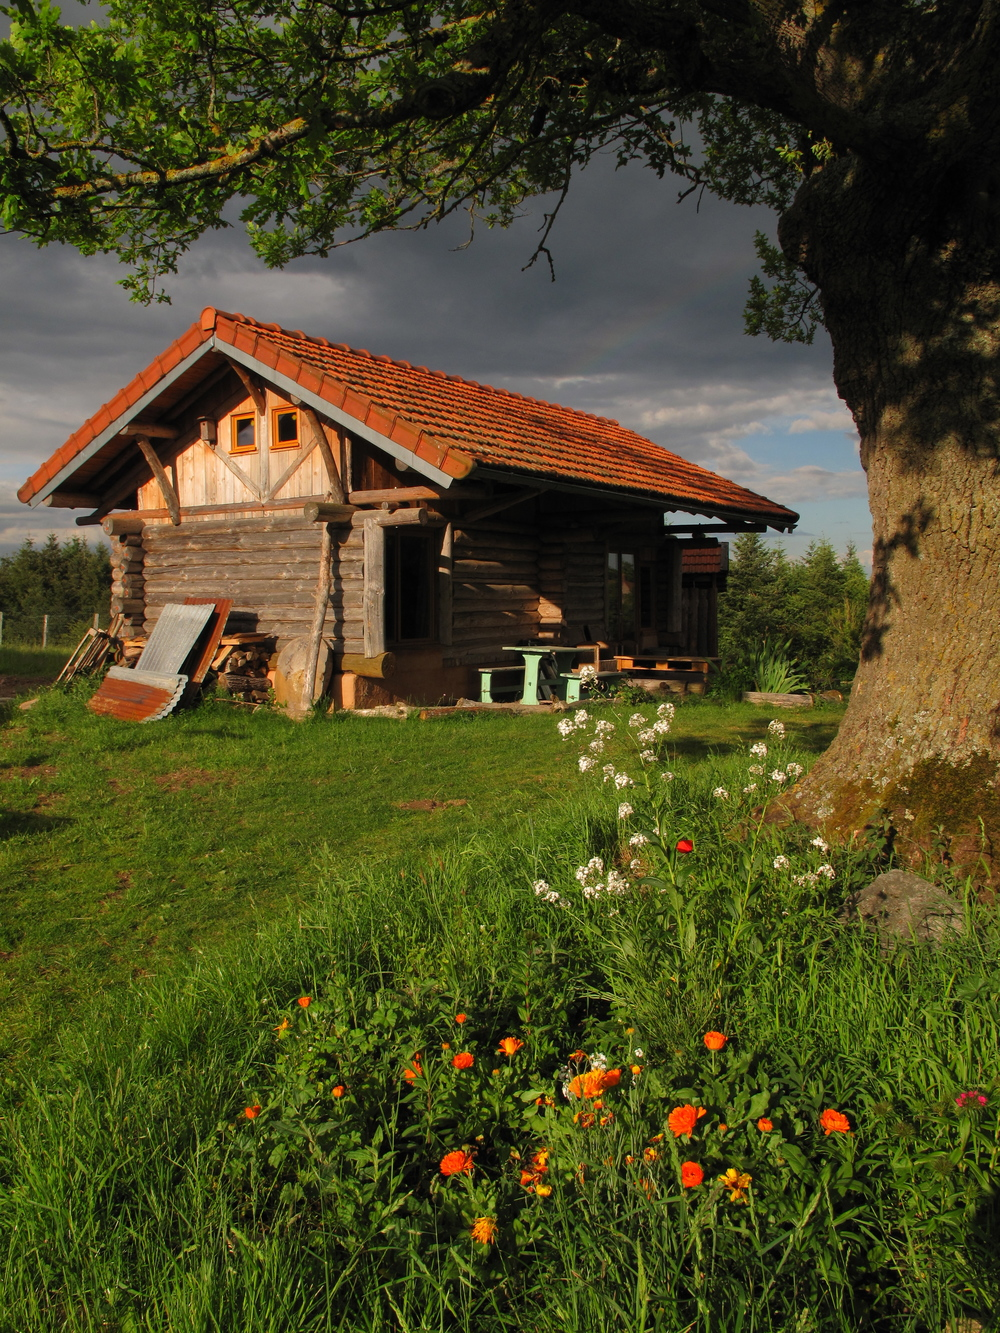 My little log cabin at Brenazet, in France